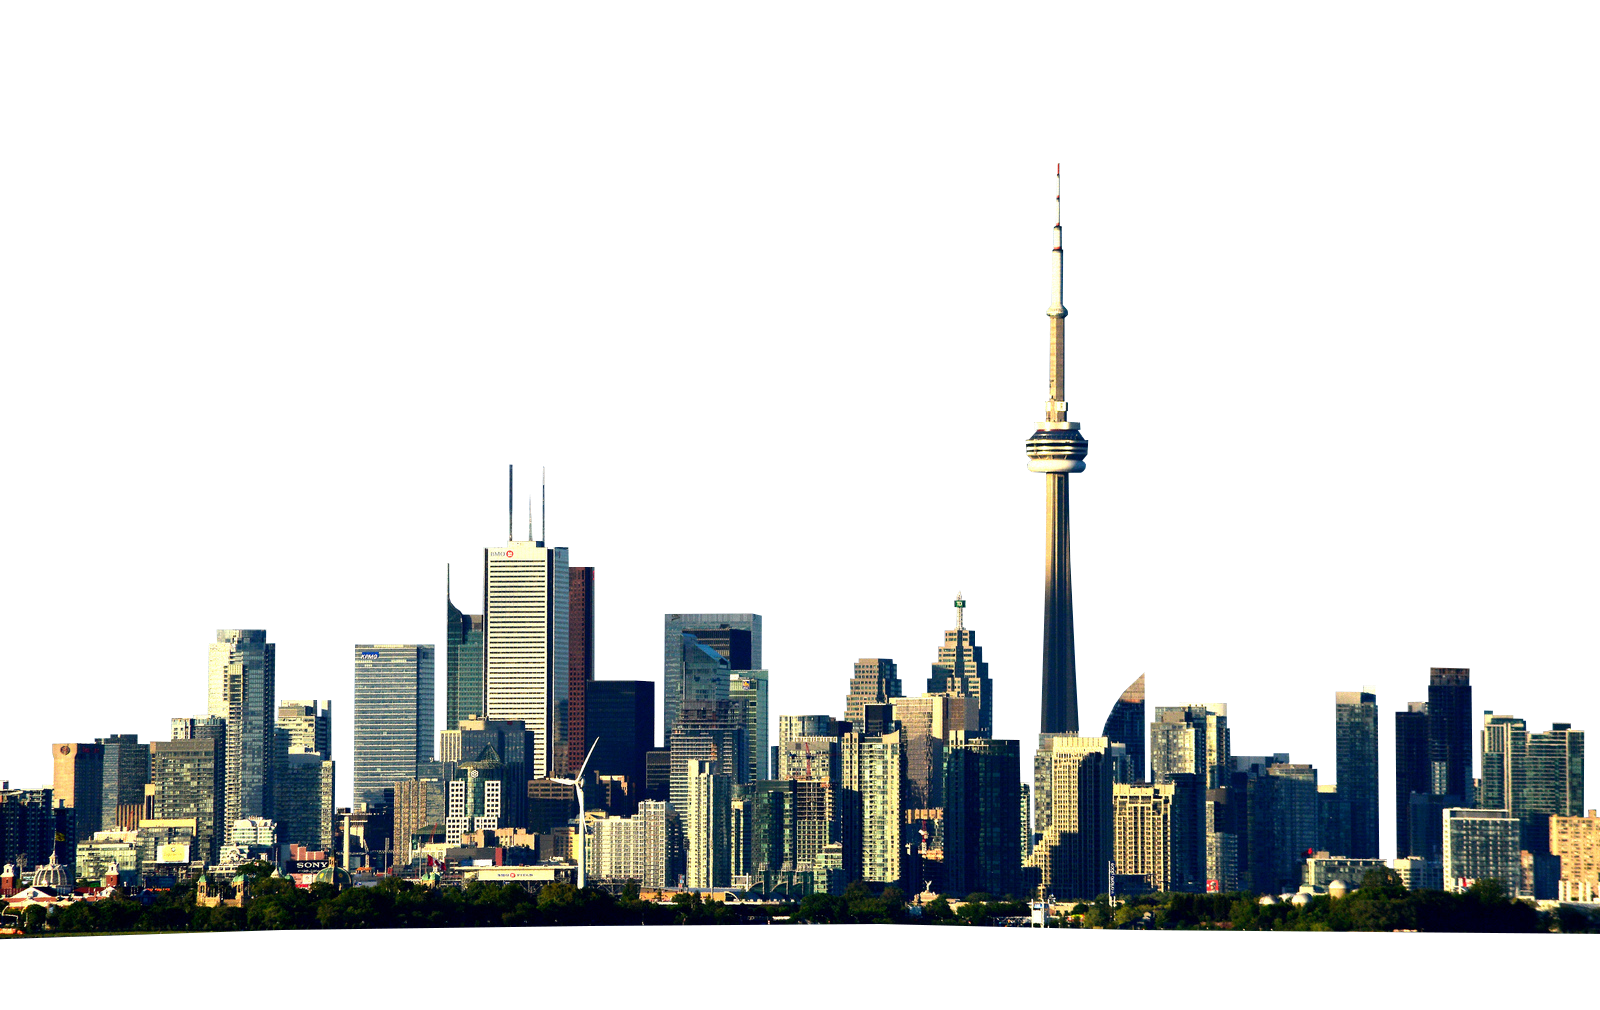 City png image purepng. Skyline transparent graphic black and white download